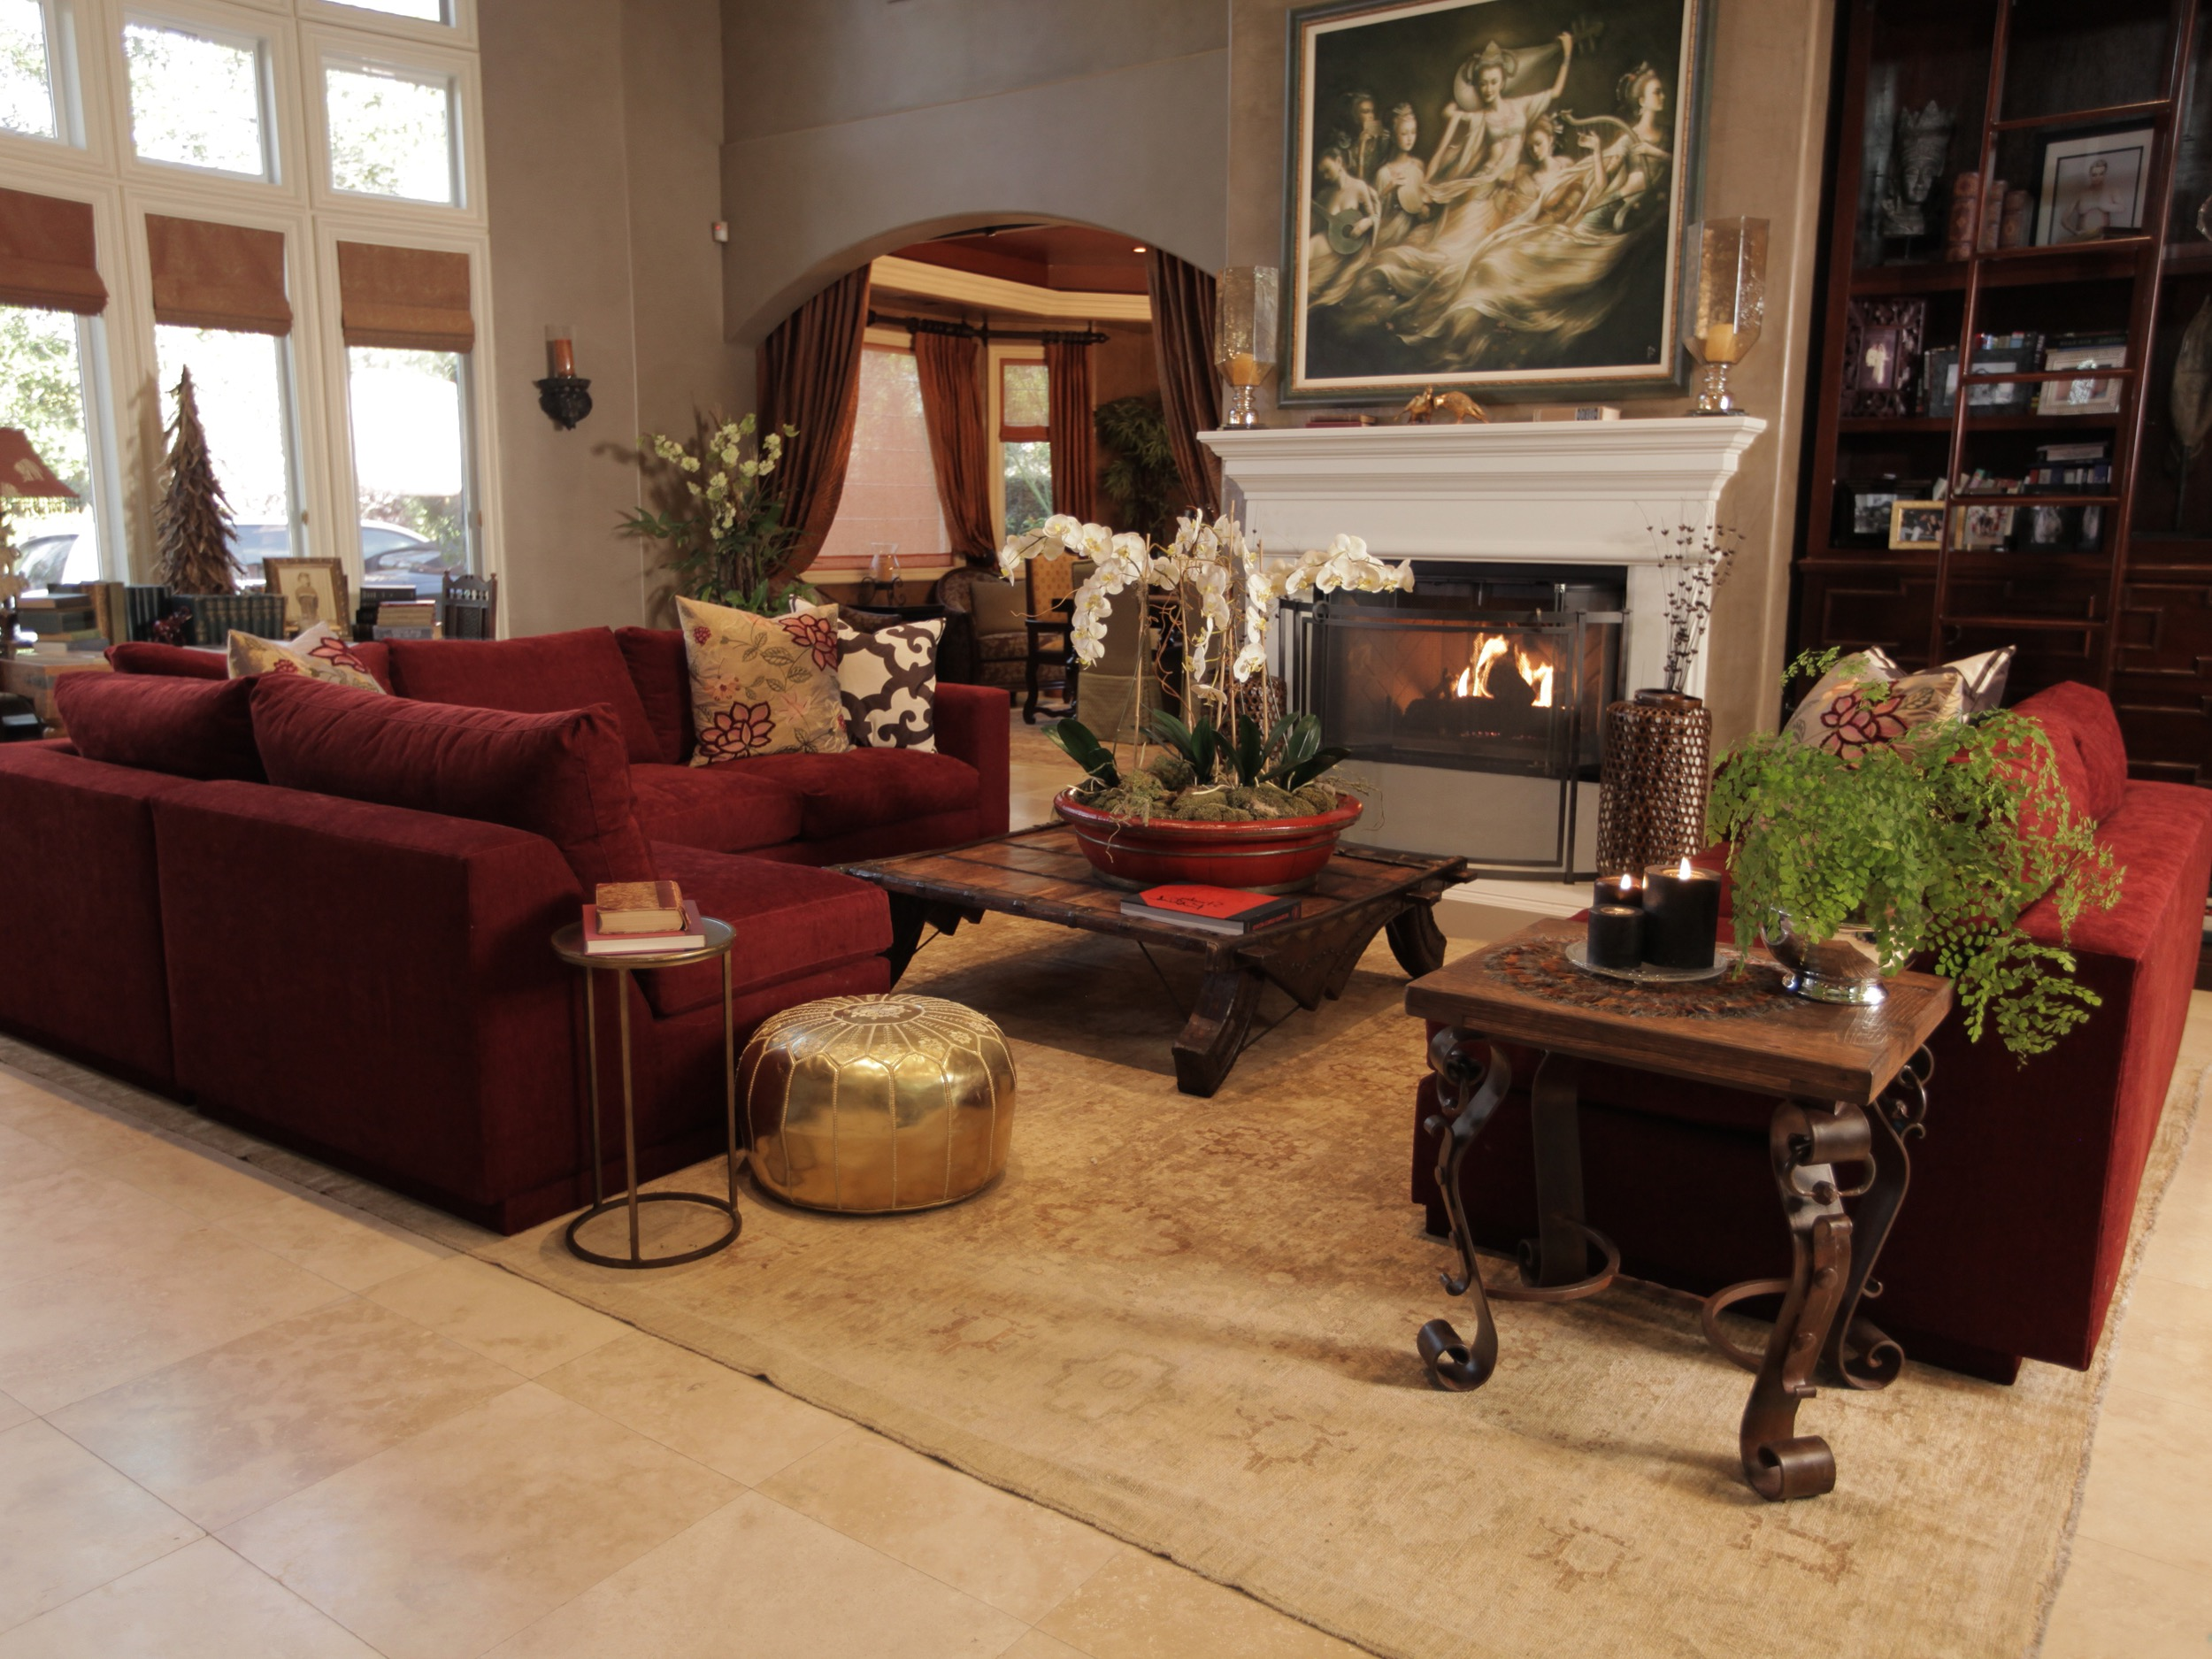 Moroccan Inspired Living Room Interior Decor (View 5 of 25)